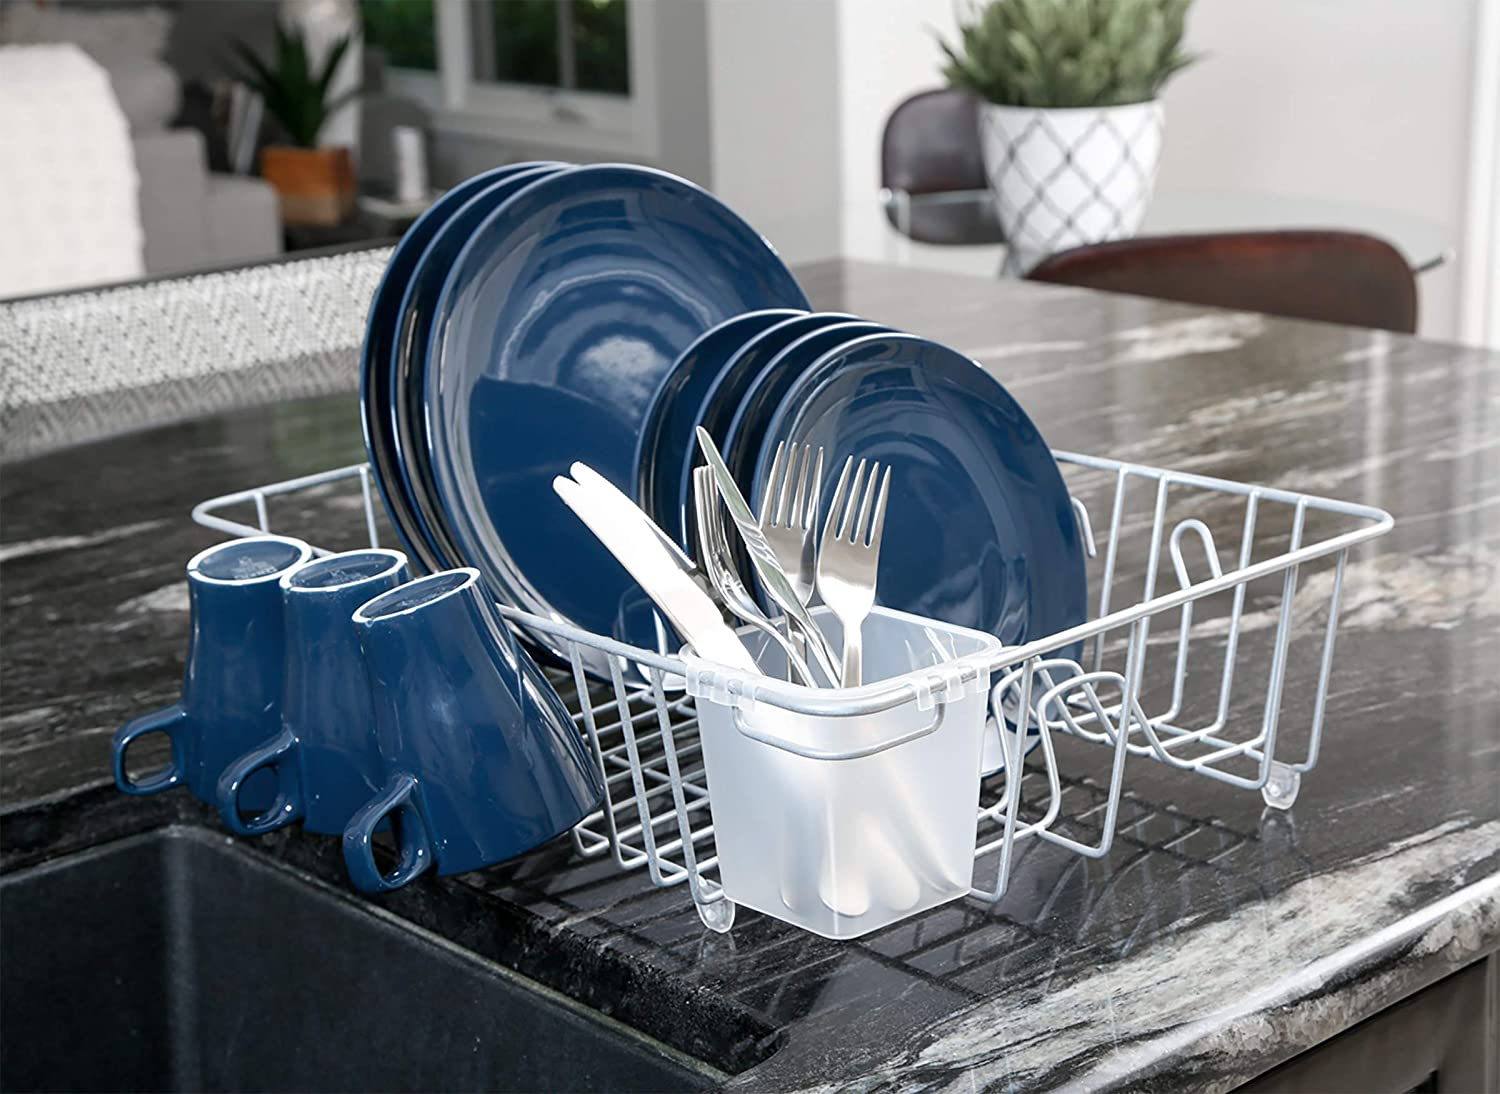 White 17.5 x 5.5 Inch Cups 8117118 Silverware Organization Smart Design Dish Drainer Rack w//Cutlery Cup /& Plate Dividers Steel Wire Frame Large for Dishes Kitchen White